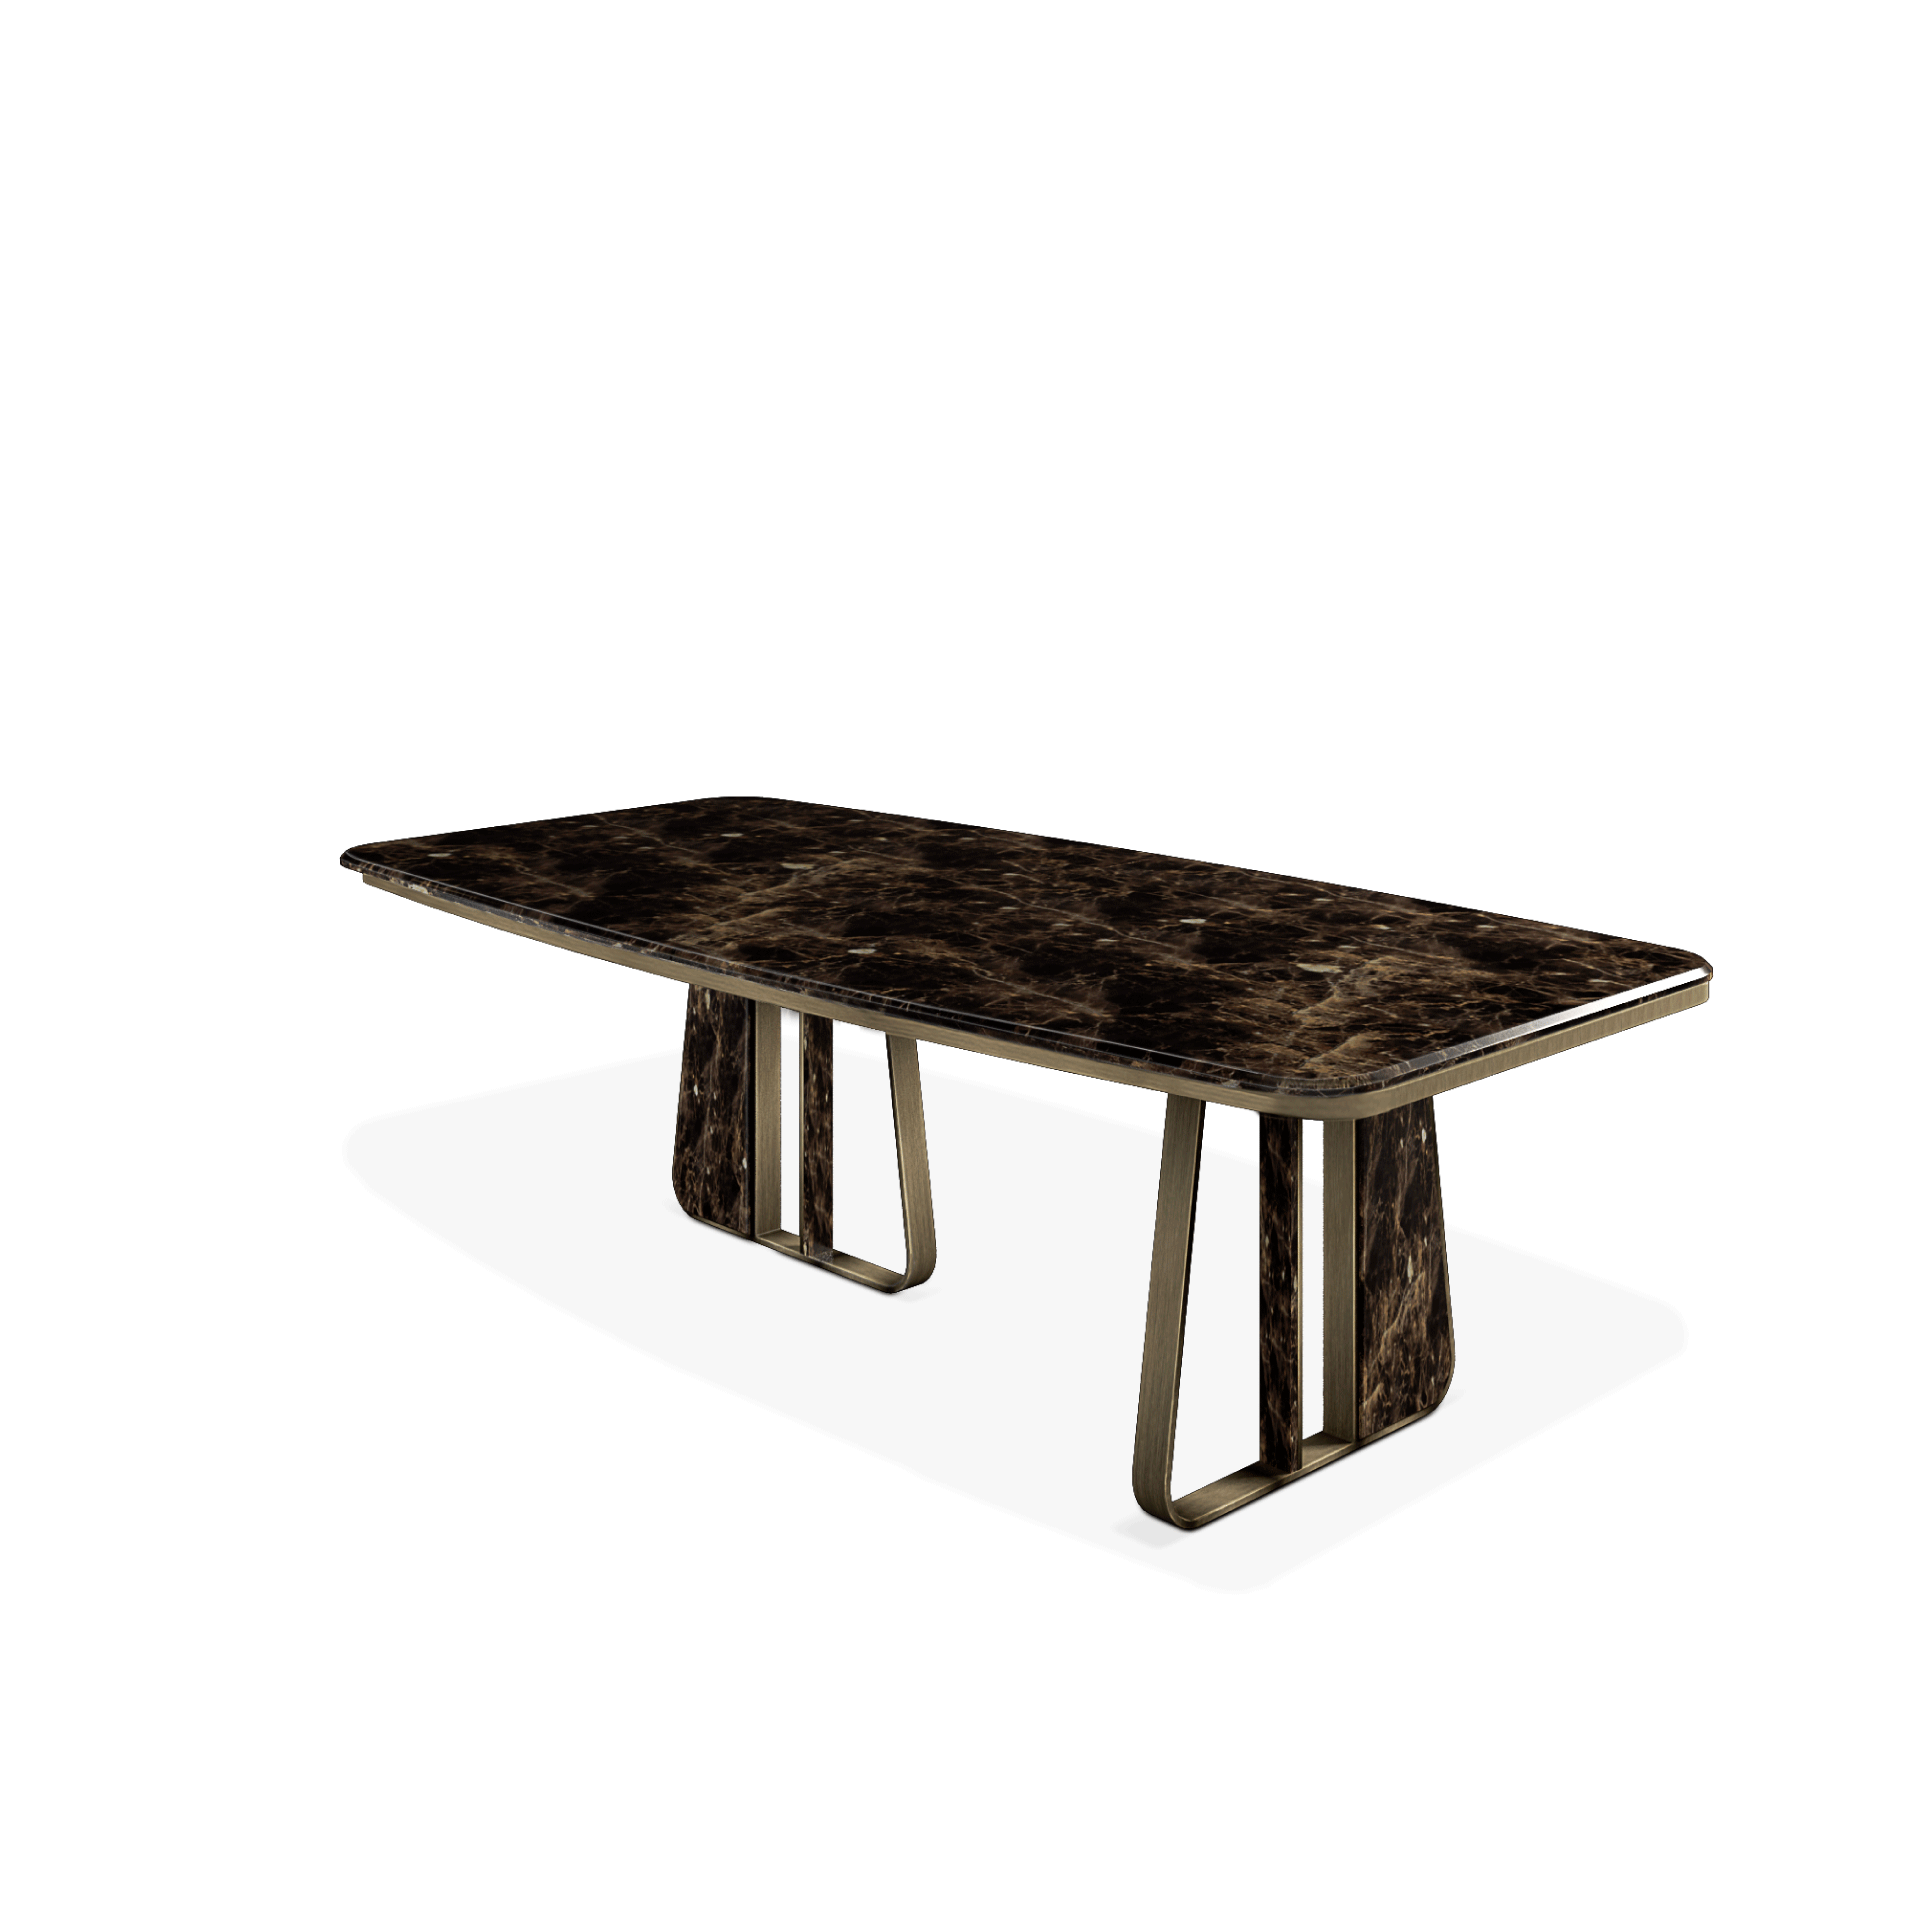 Kenai Dining Table featuring Black and Gold Marble